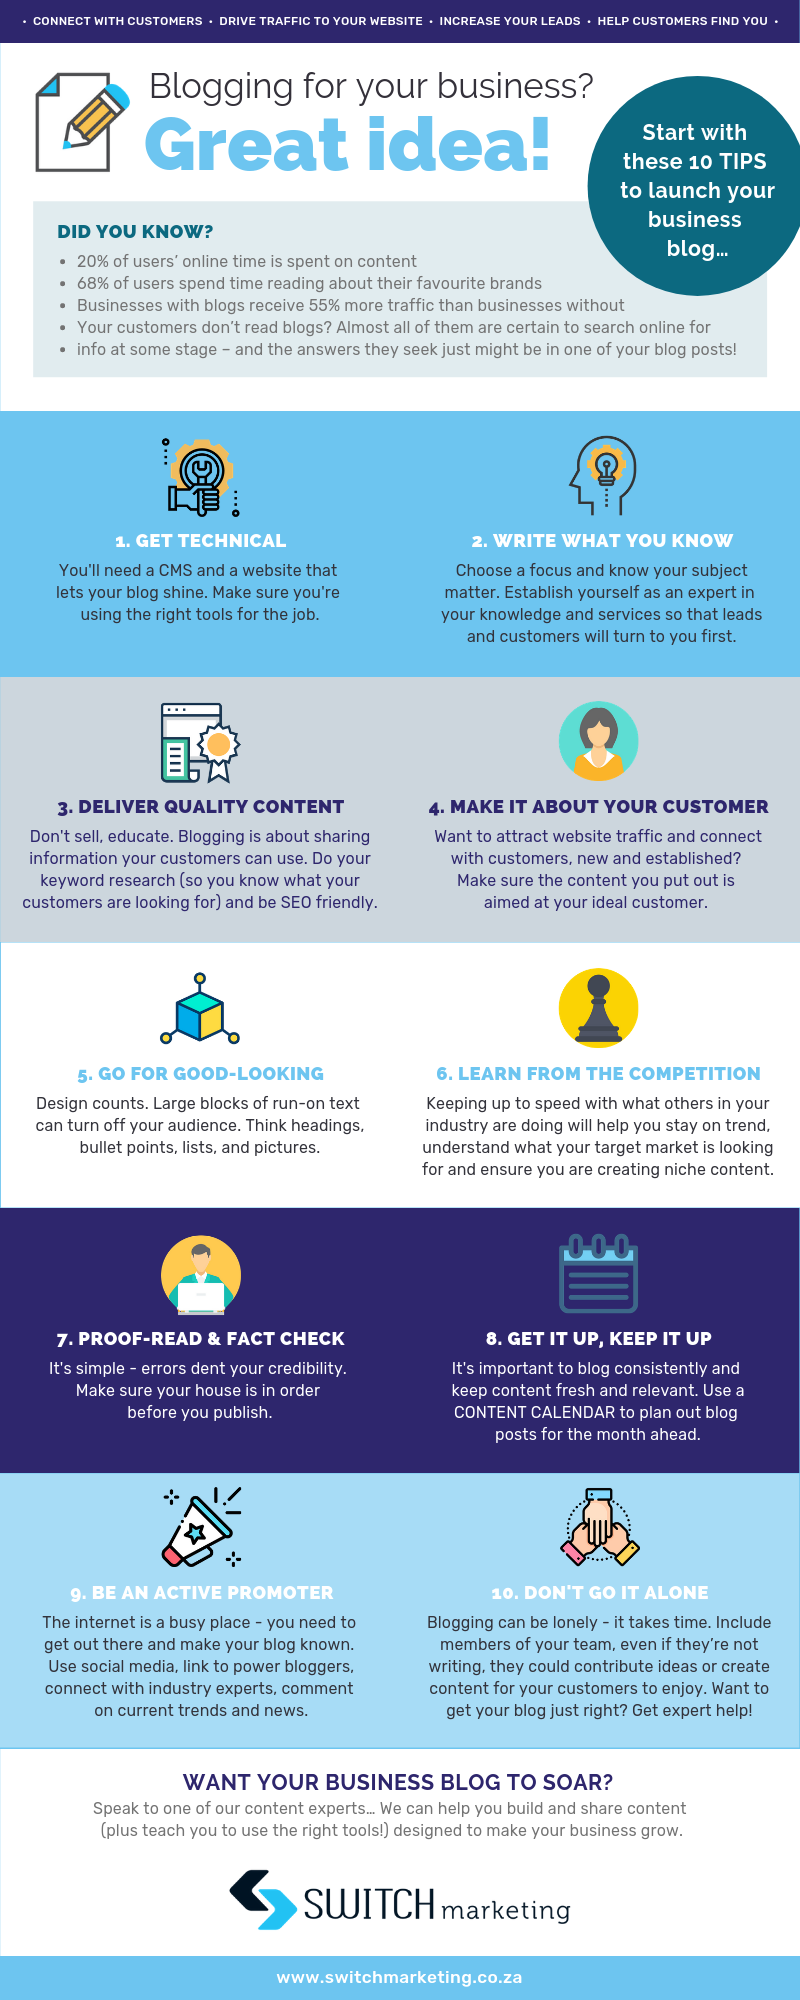 Blogging for business infographic.png